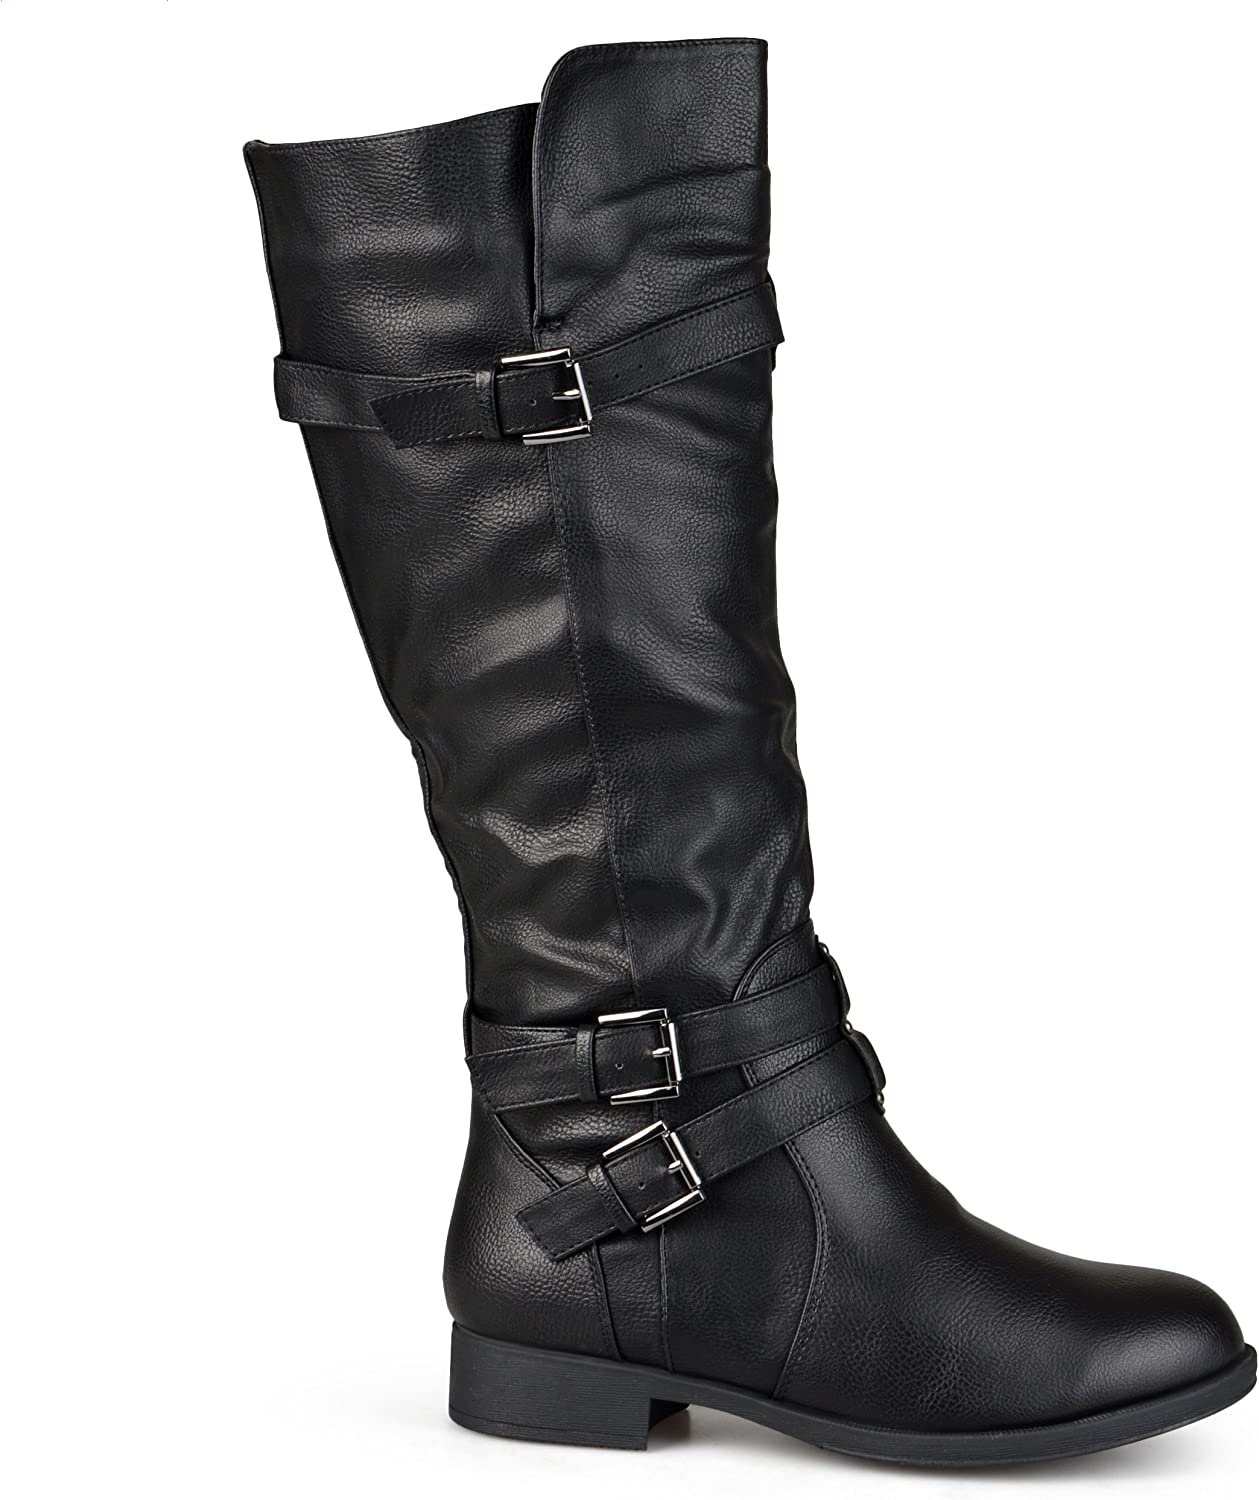 Brinley Co Womens Buffalo Knee High Boot